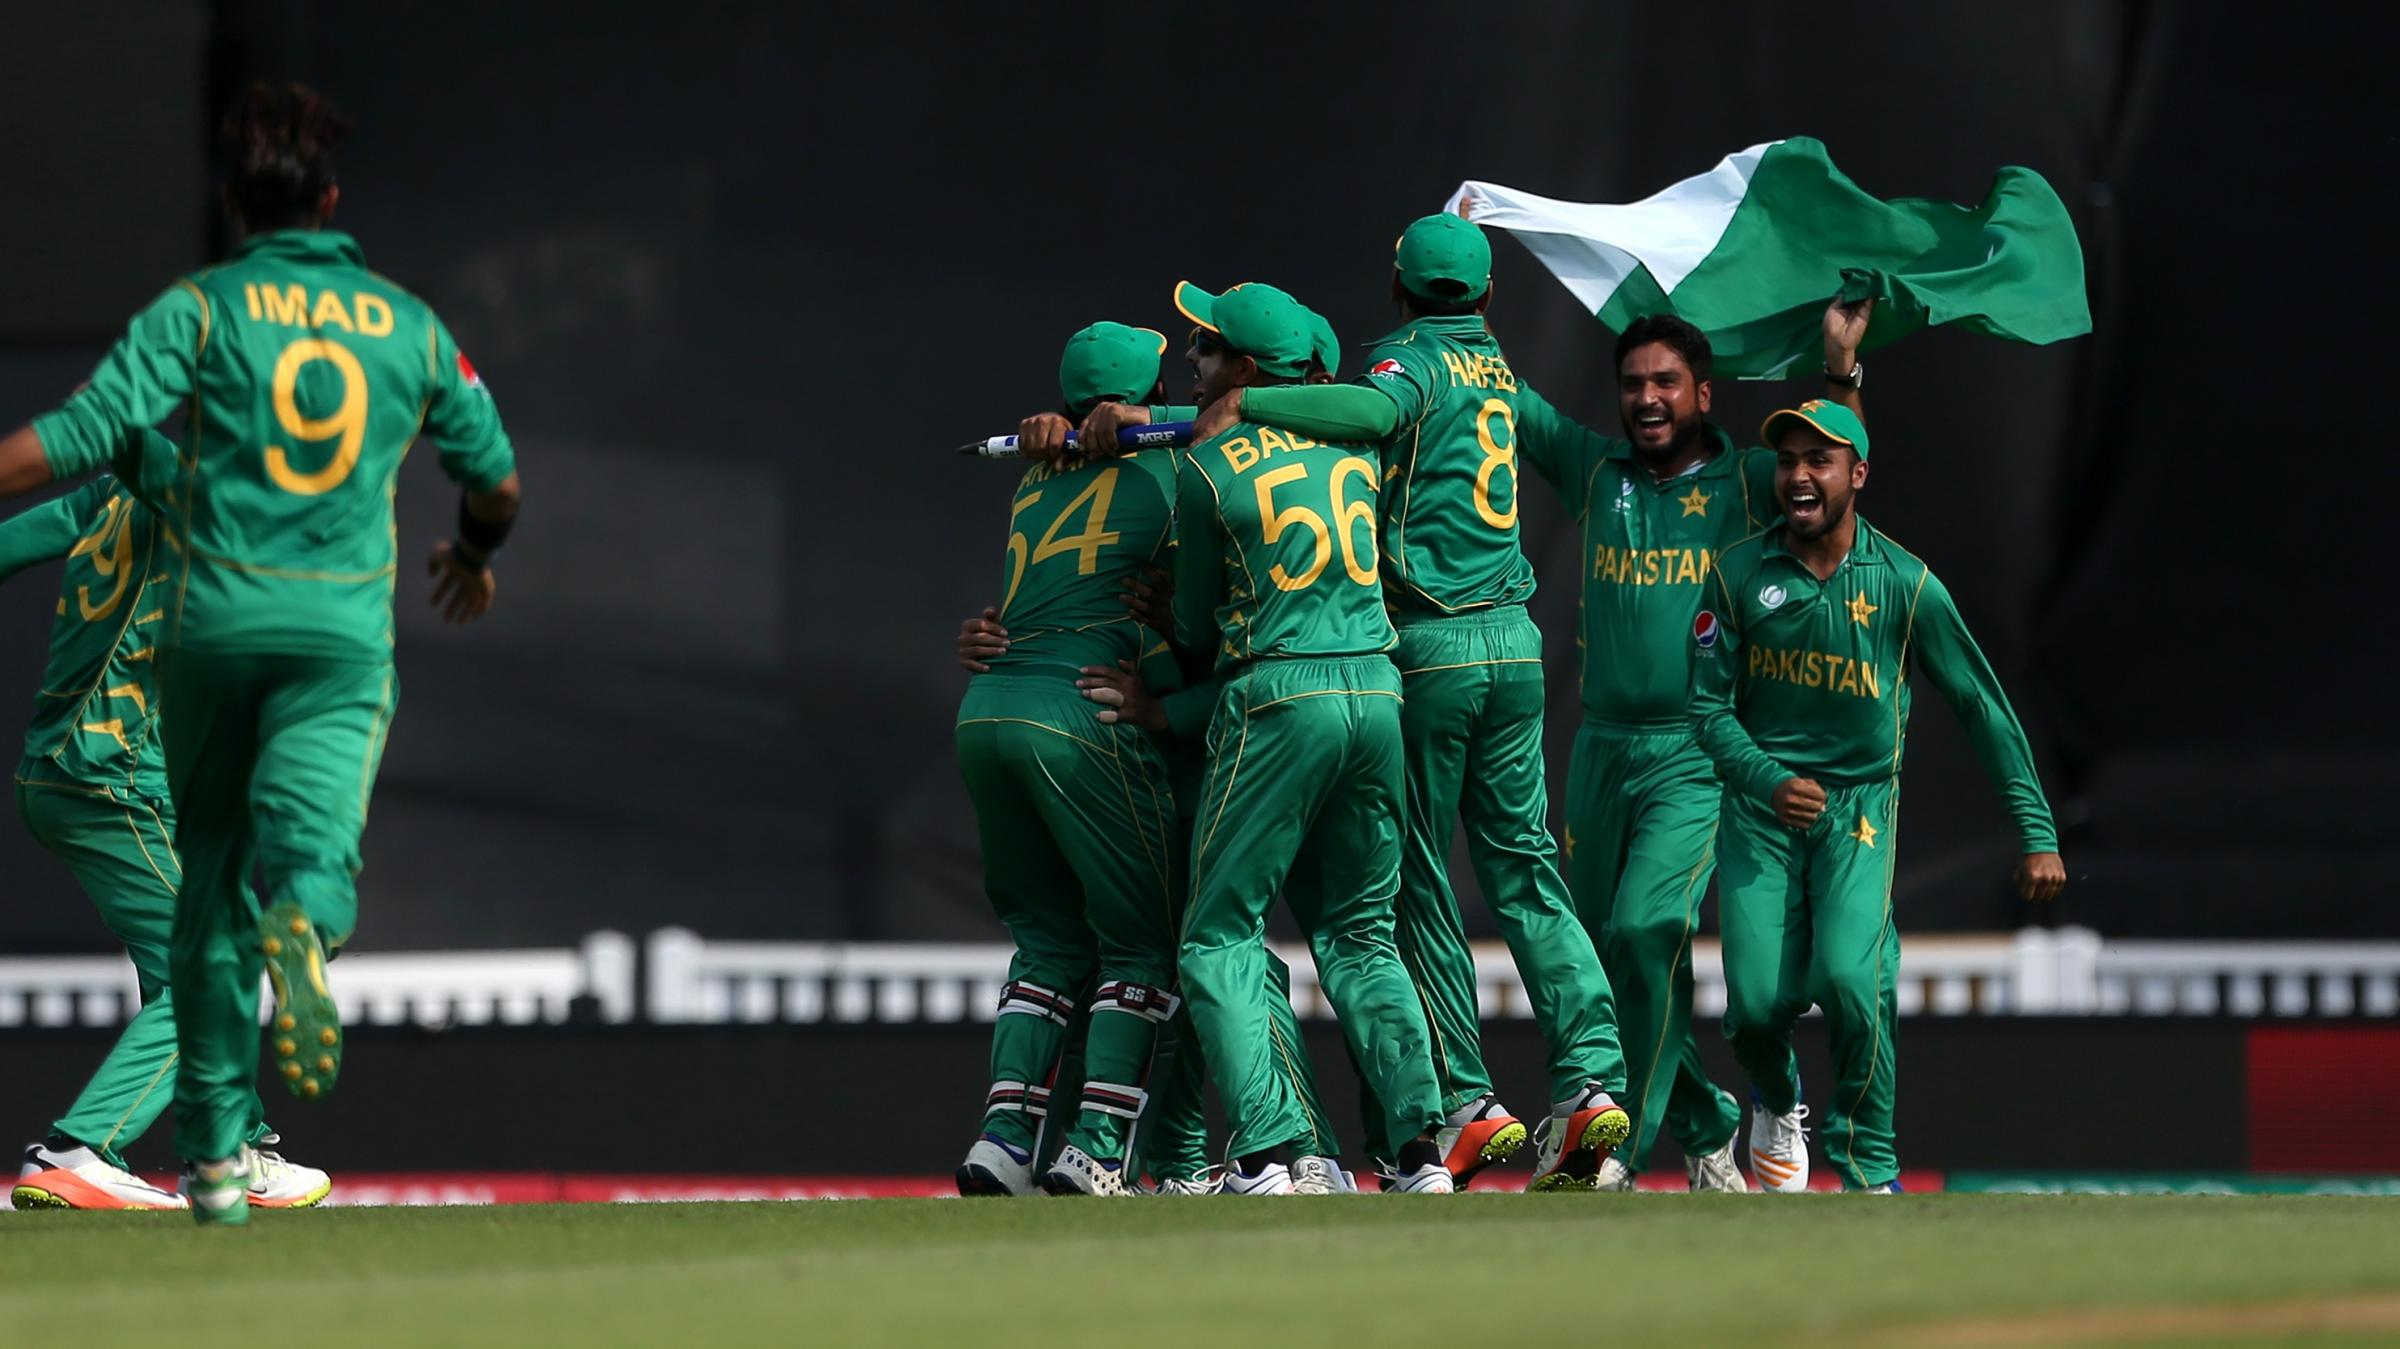 Champions Trophy final: India lose to Pakistan by 180 runs